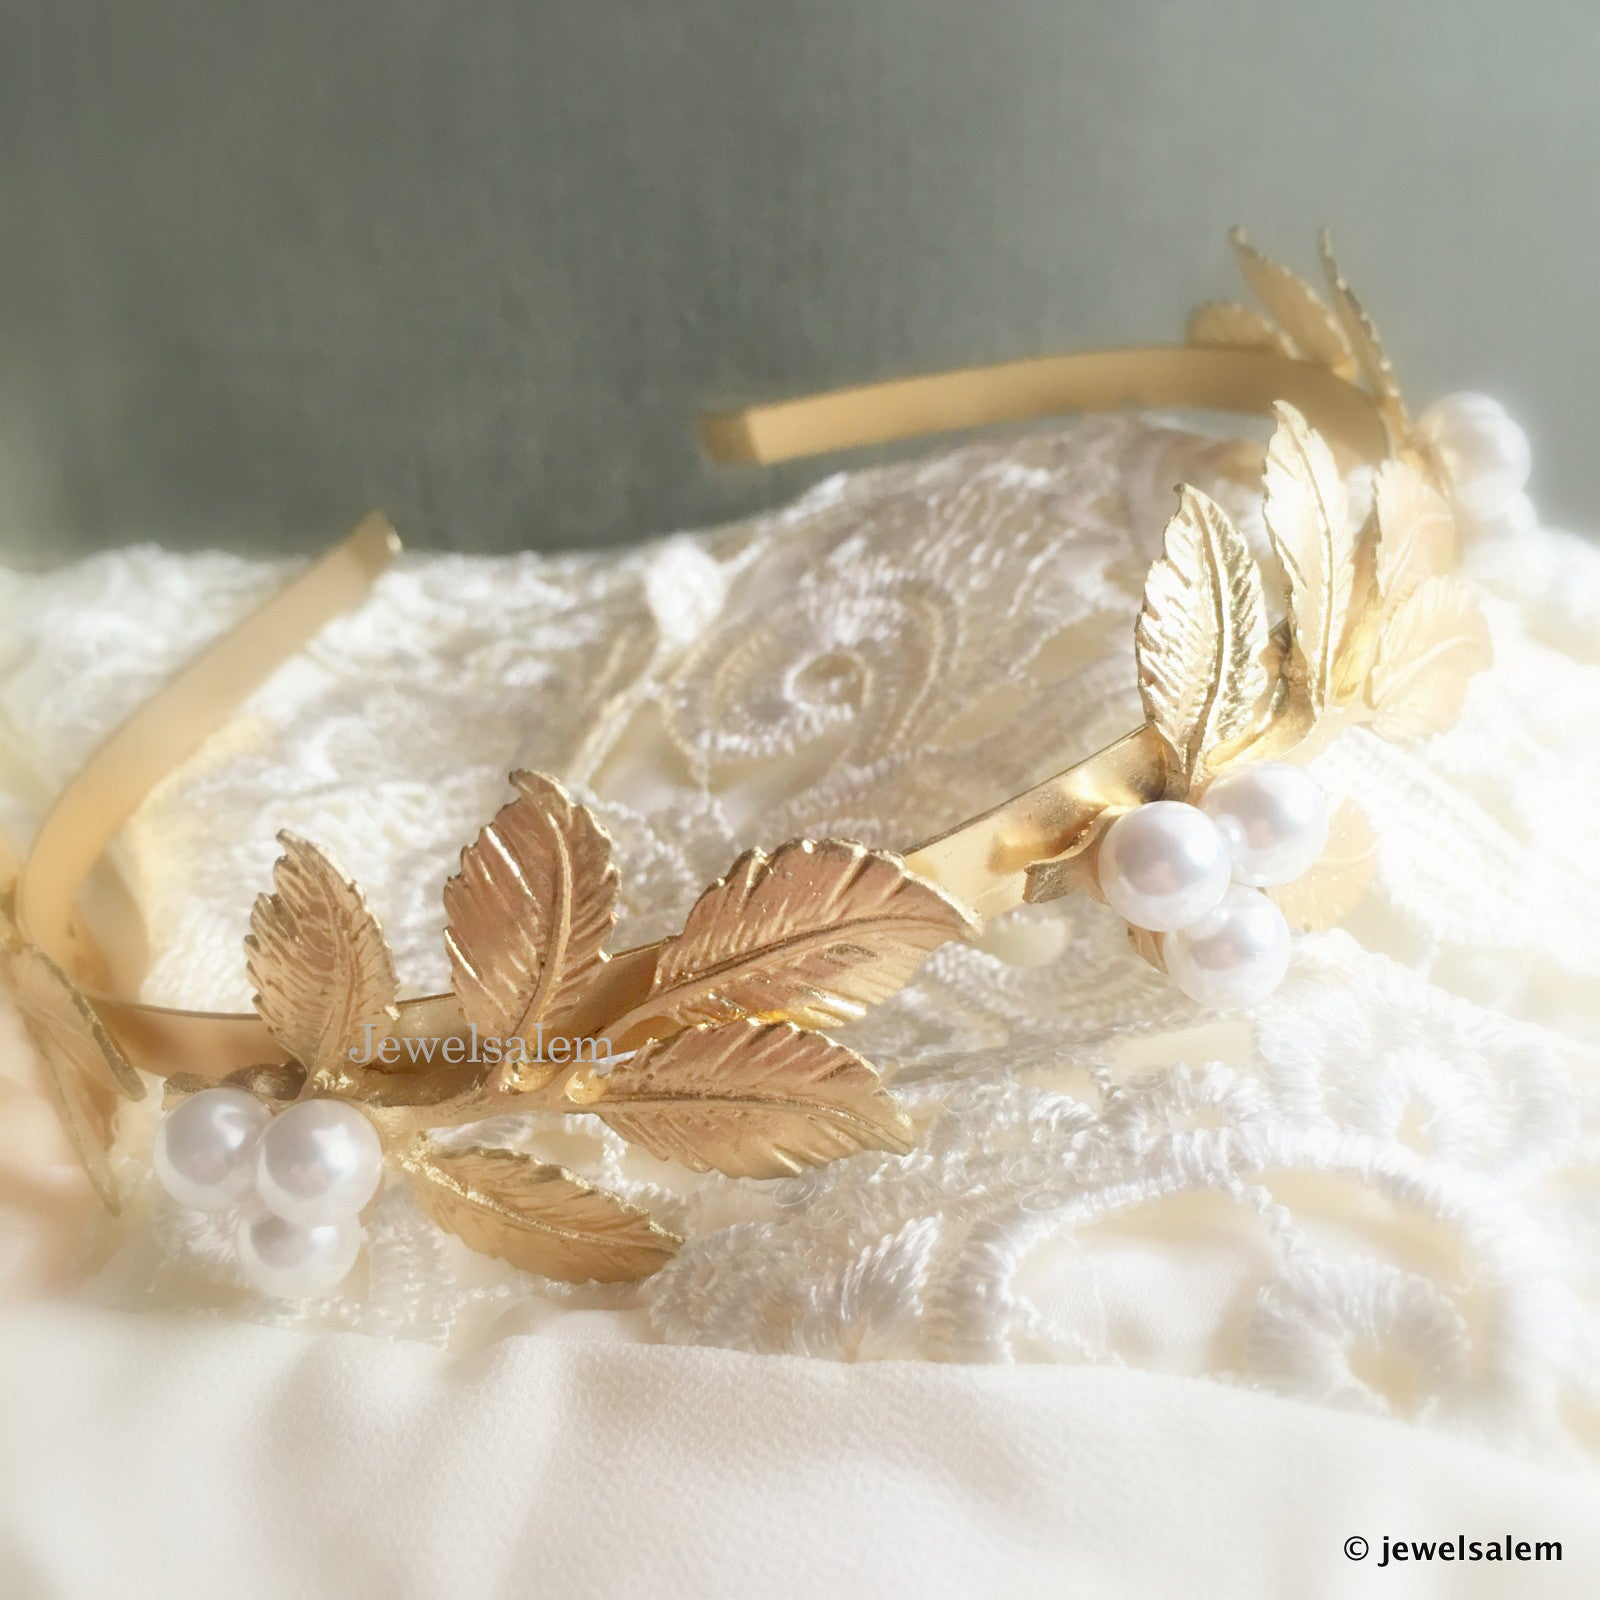 Gold Leaf Headband Bridal Wreath with Pearl and Leaves - Jewelsalem